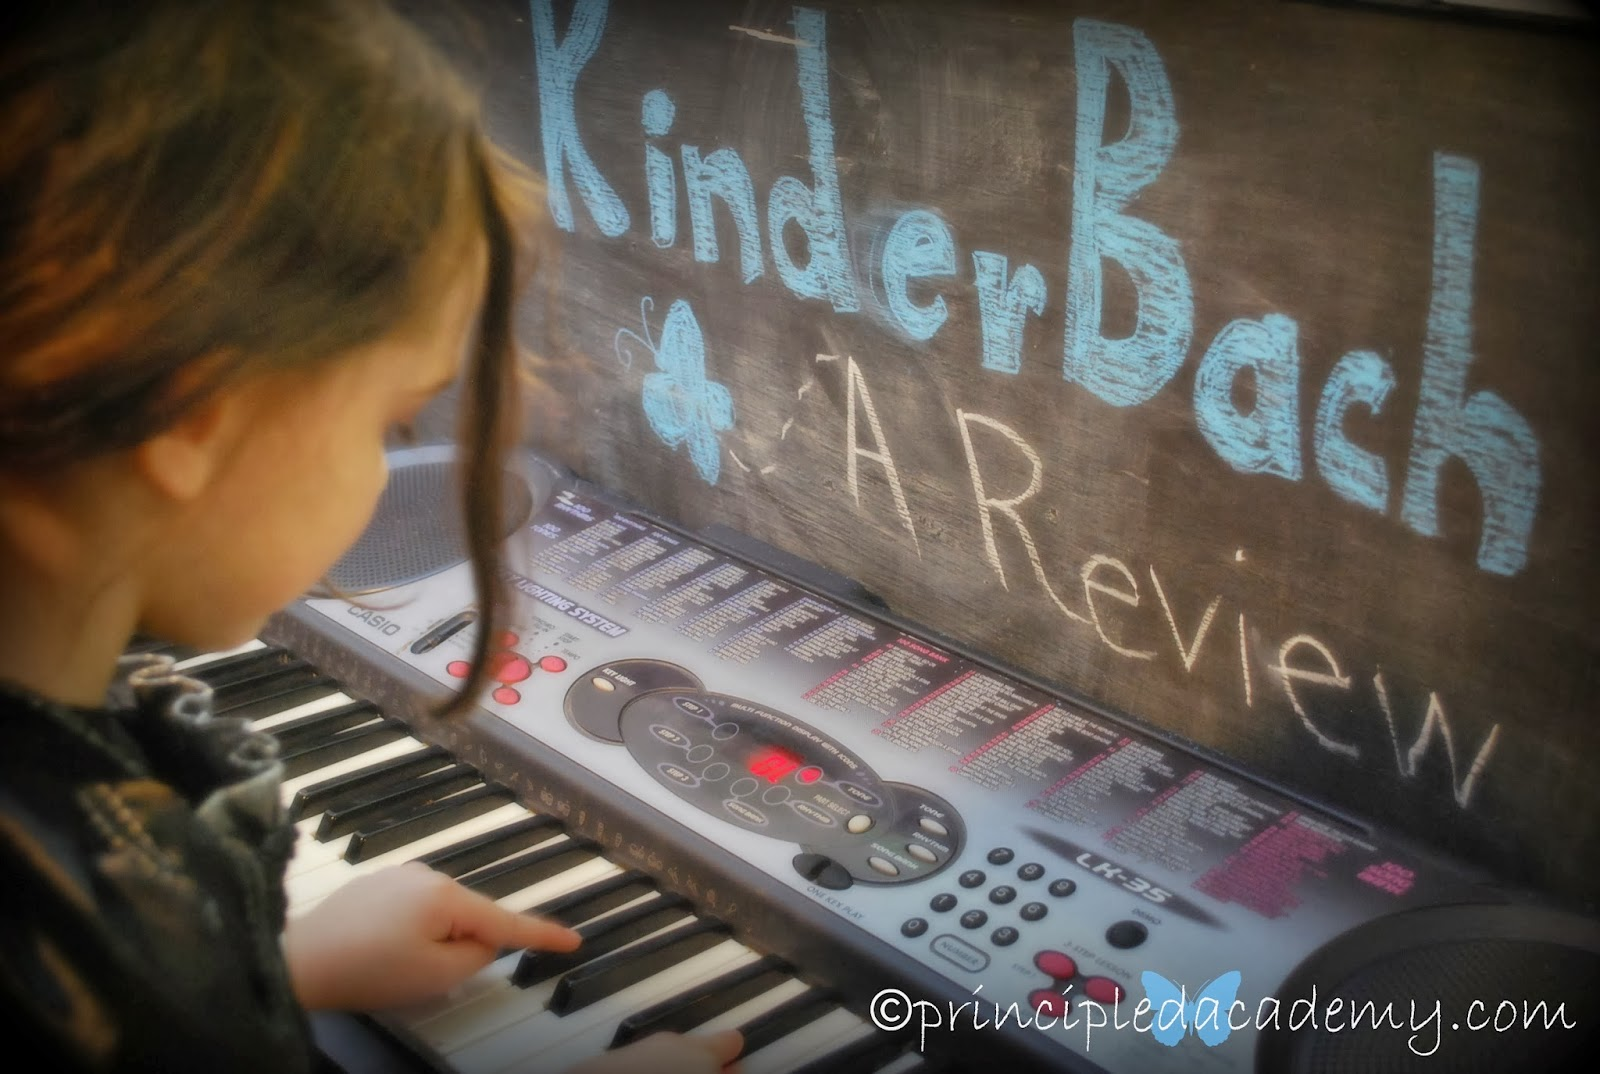 early pinao lessons, preschool piano, KinderBach, keyboard lessons